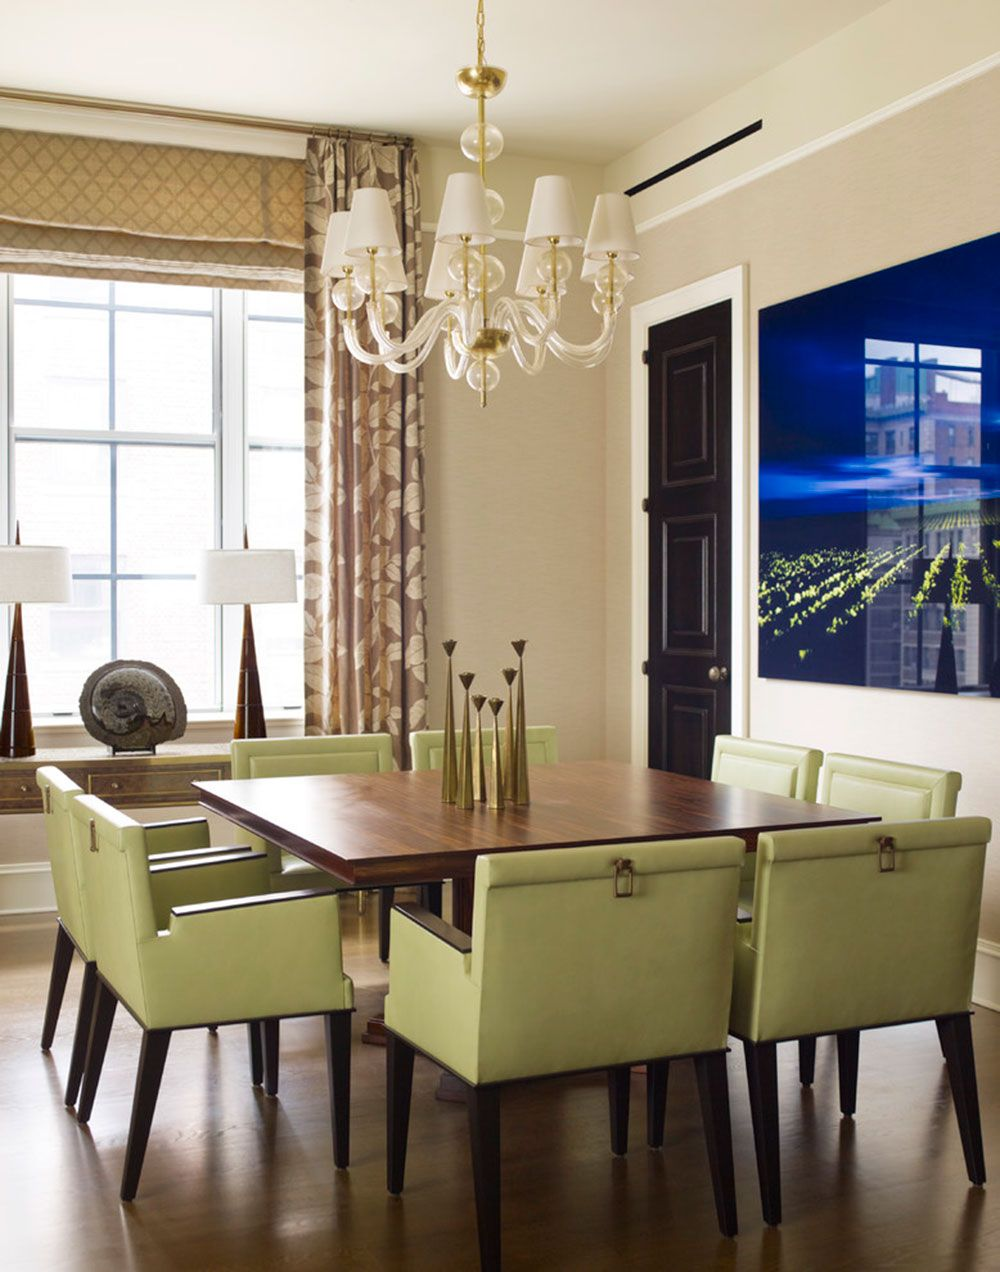 Dining Room Table Design Ideas For Entire Family